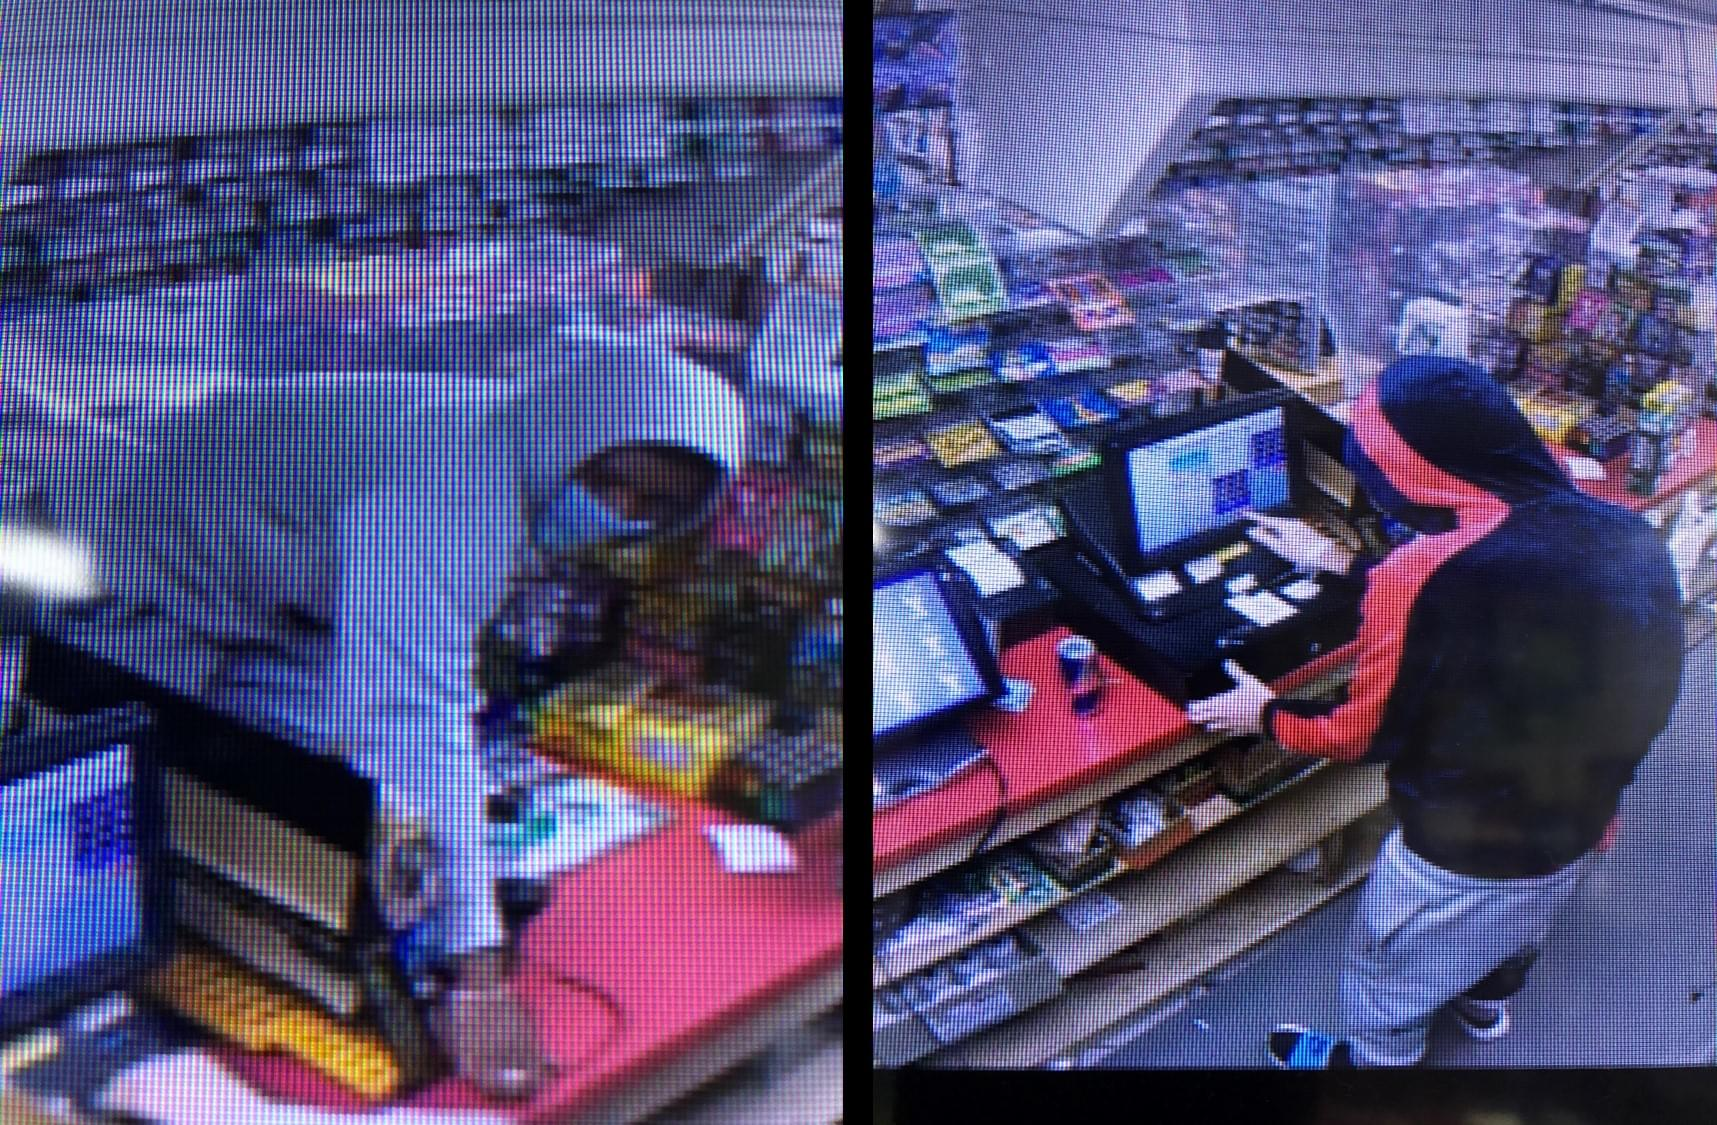 Morristown PD Asking for Help Identifying Suspects